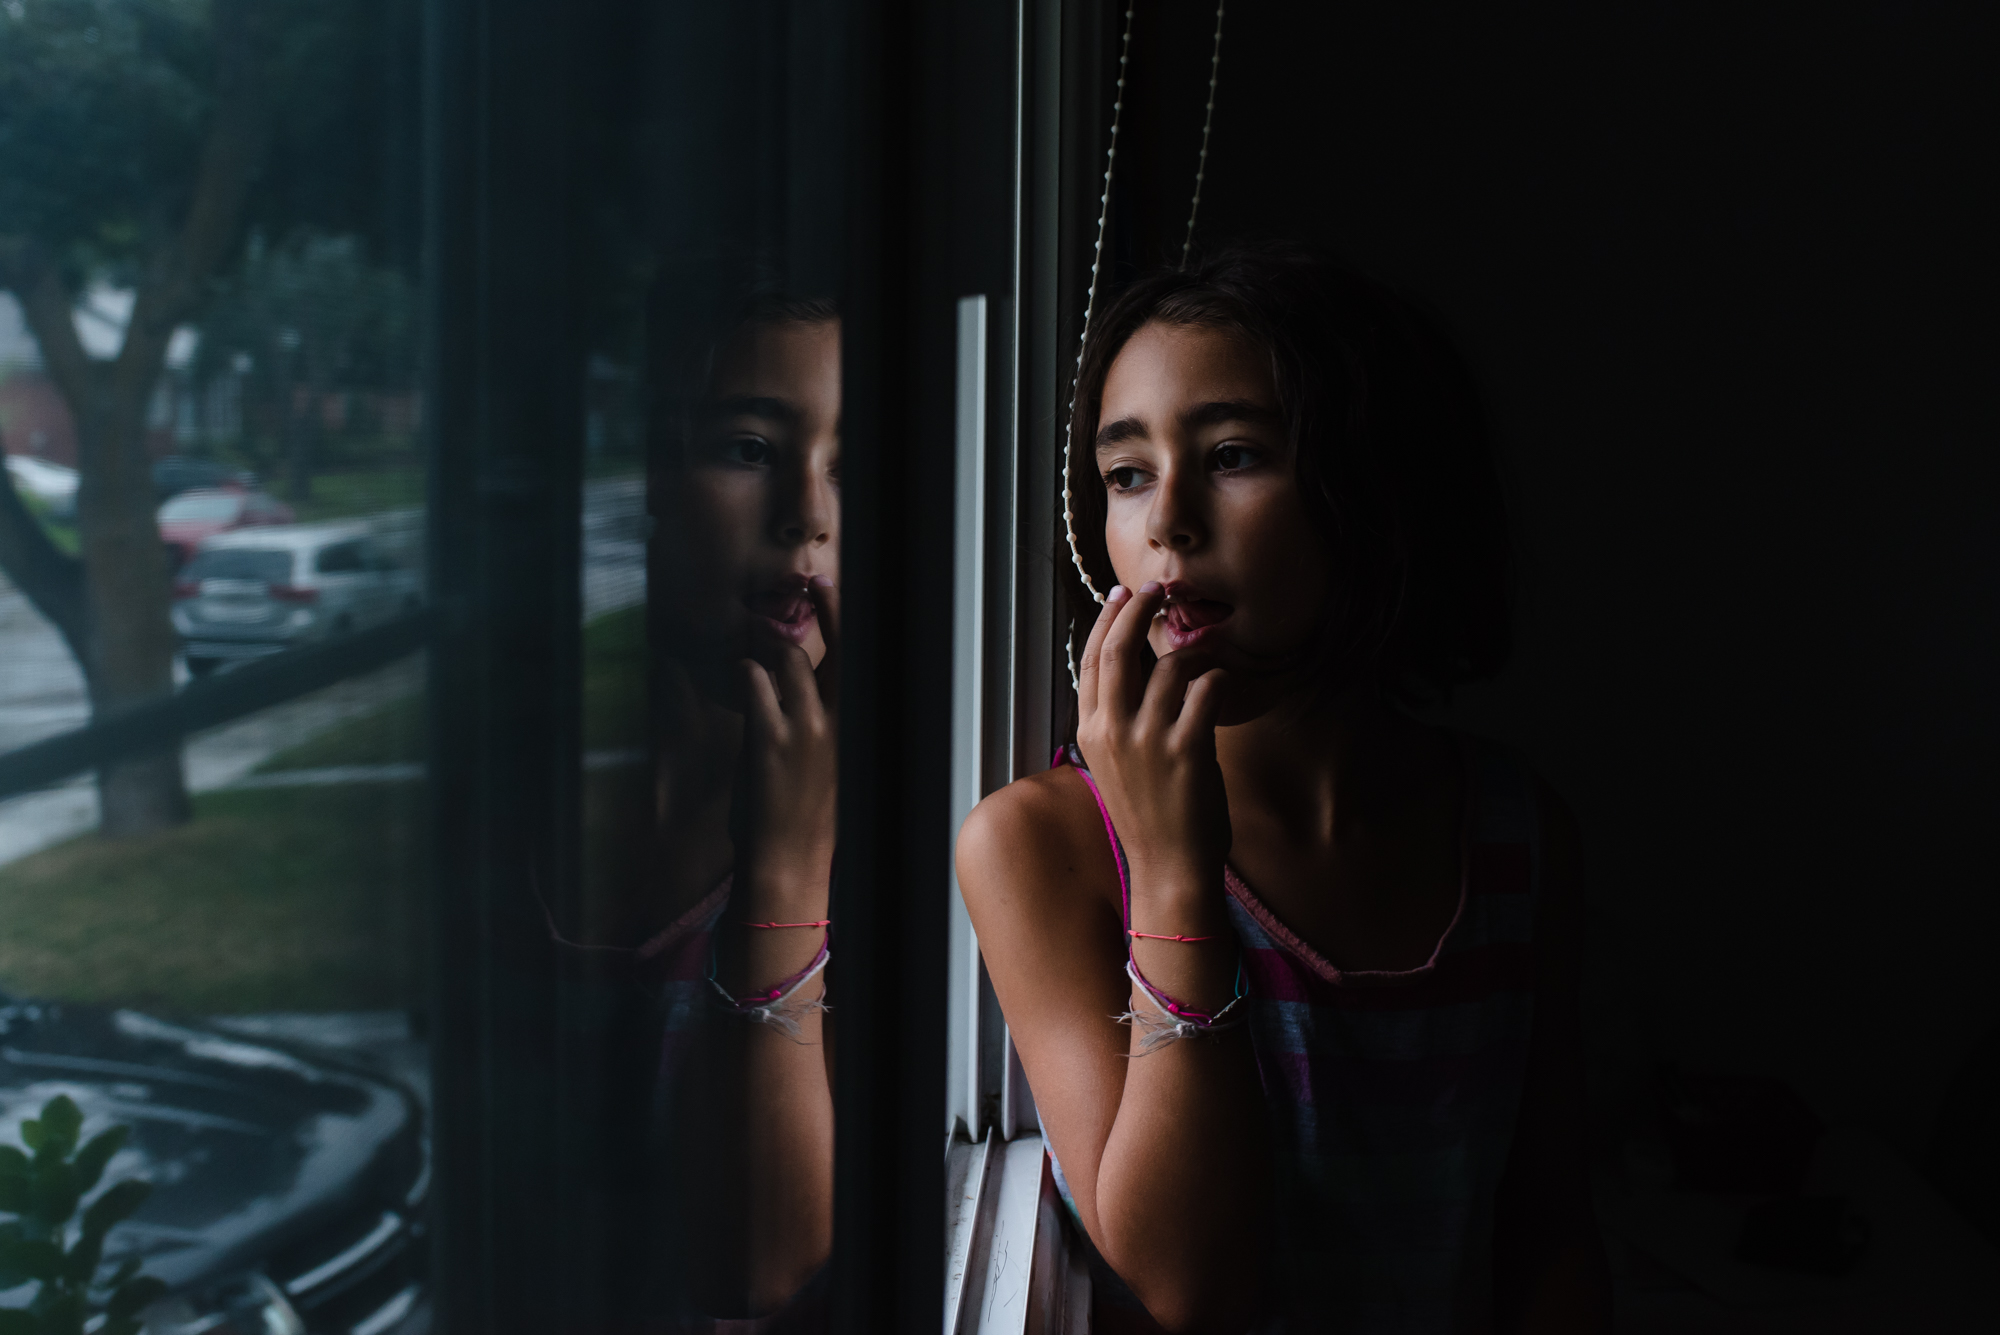 girls looking out the window with her reflection in the glass